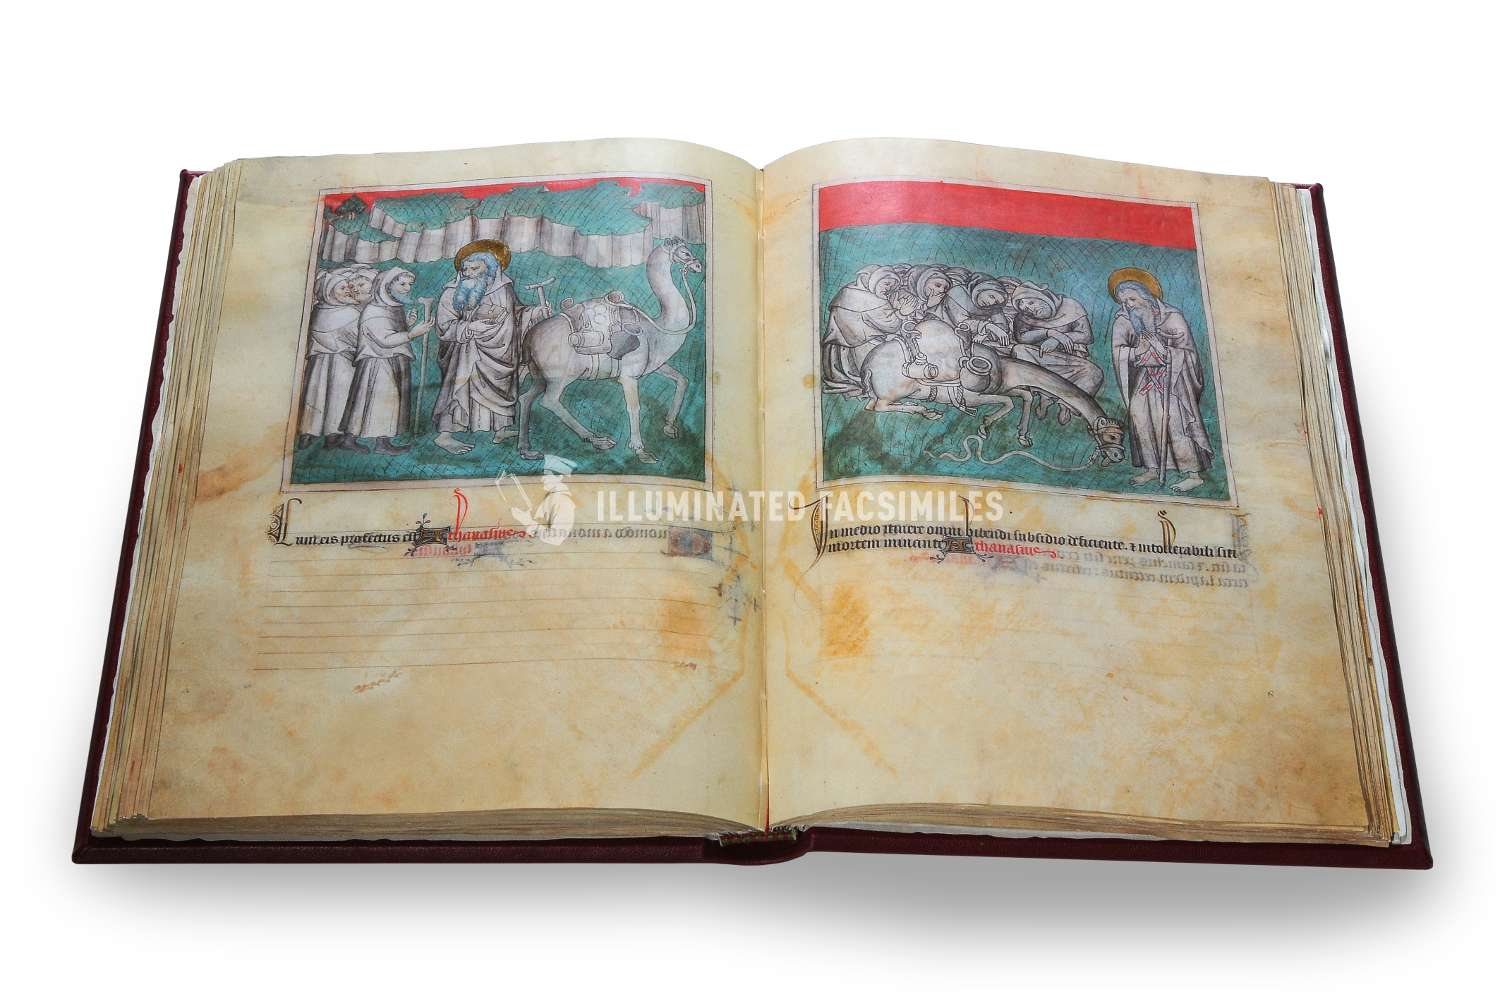 ILLUMINATED FACSIMILES®, ArtCodex – Sant'Antonio Abate, la Vita e le Opere – photo 09, copyright Illuminated Facsimiles